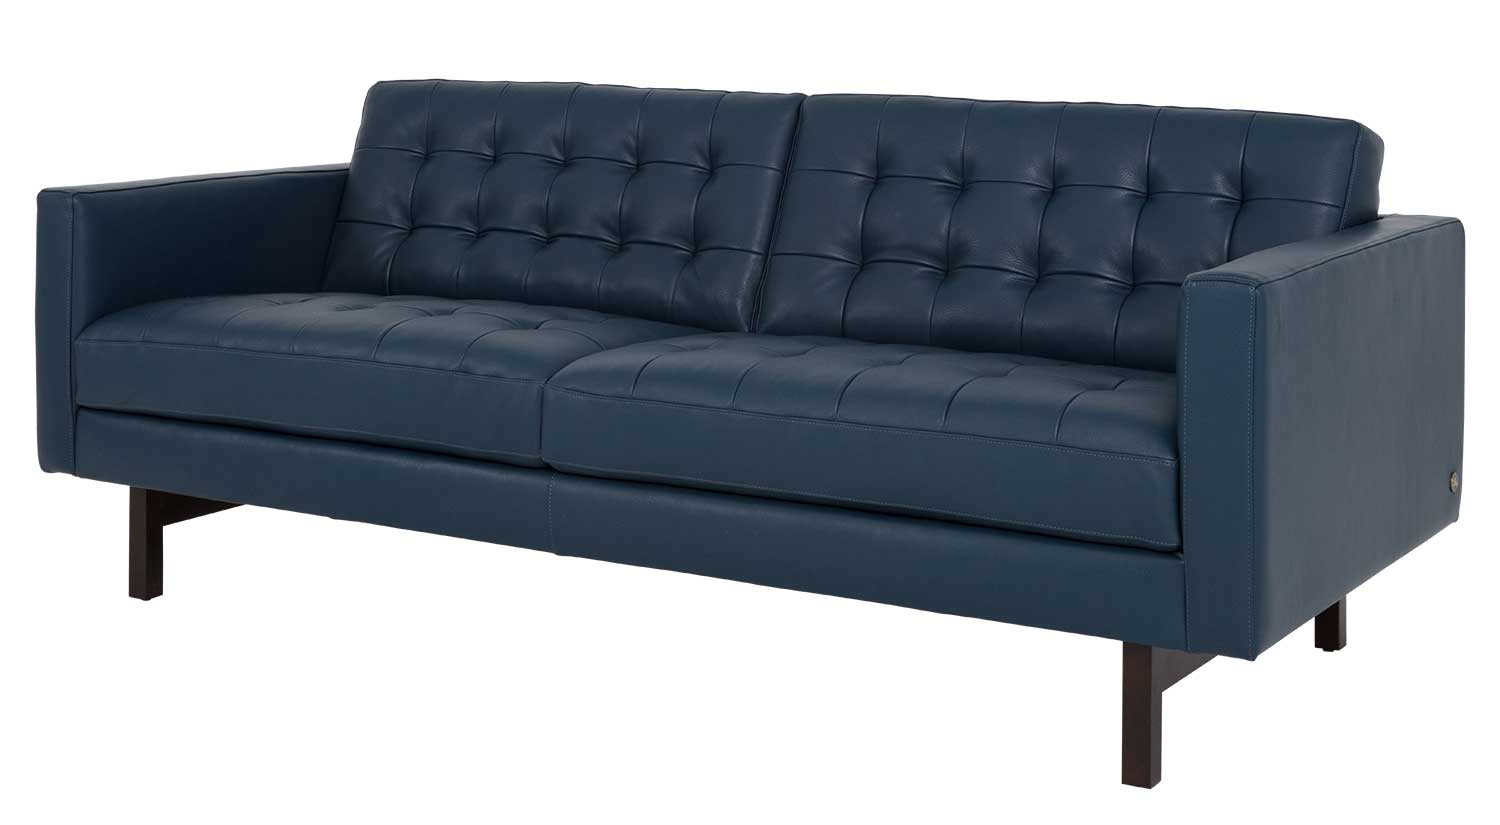 Circle Furniture – Parker Sofa | Designer Sofas Boston | Circle Intended For Parker Sofa Chairs (Image 3 of 25)